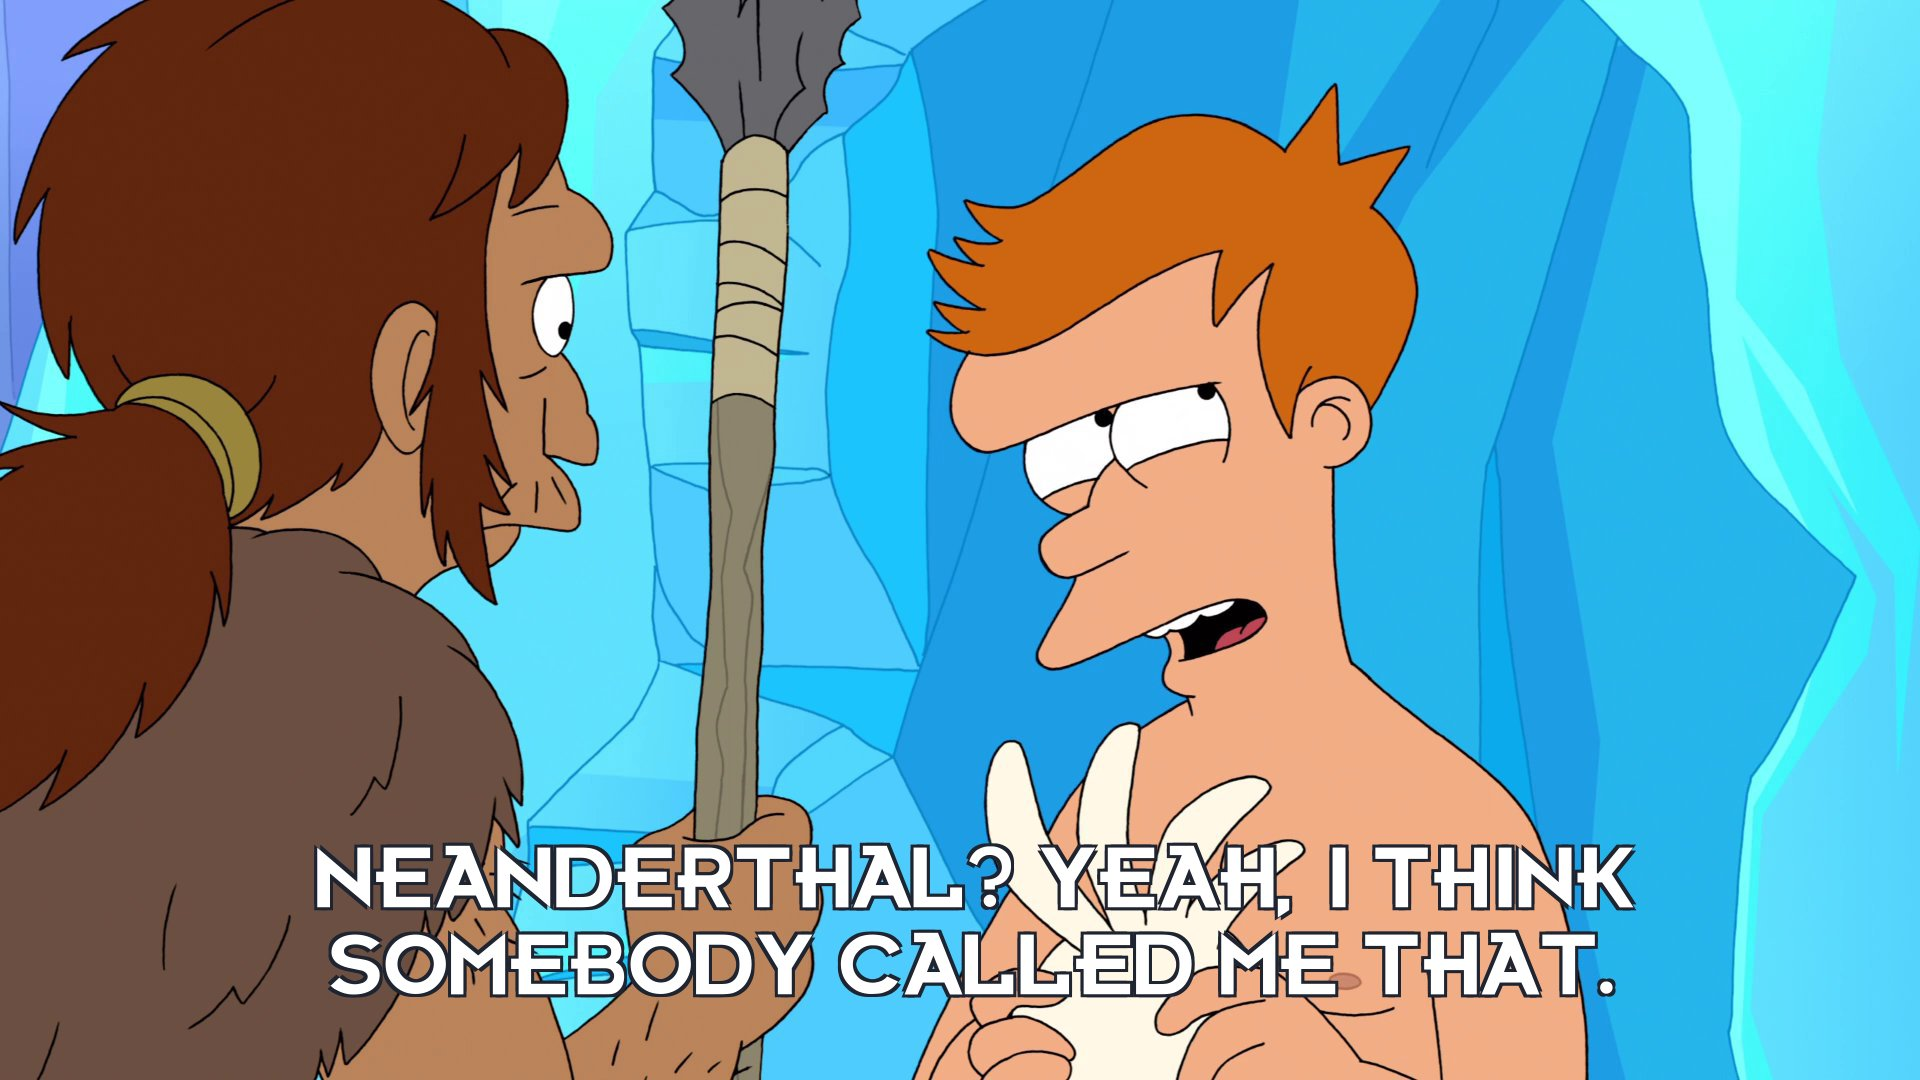 Philip J Fry: Neanderthal? Yeah, I think somebody called me that.